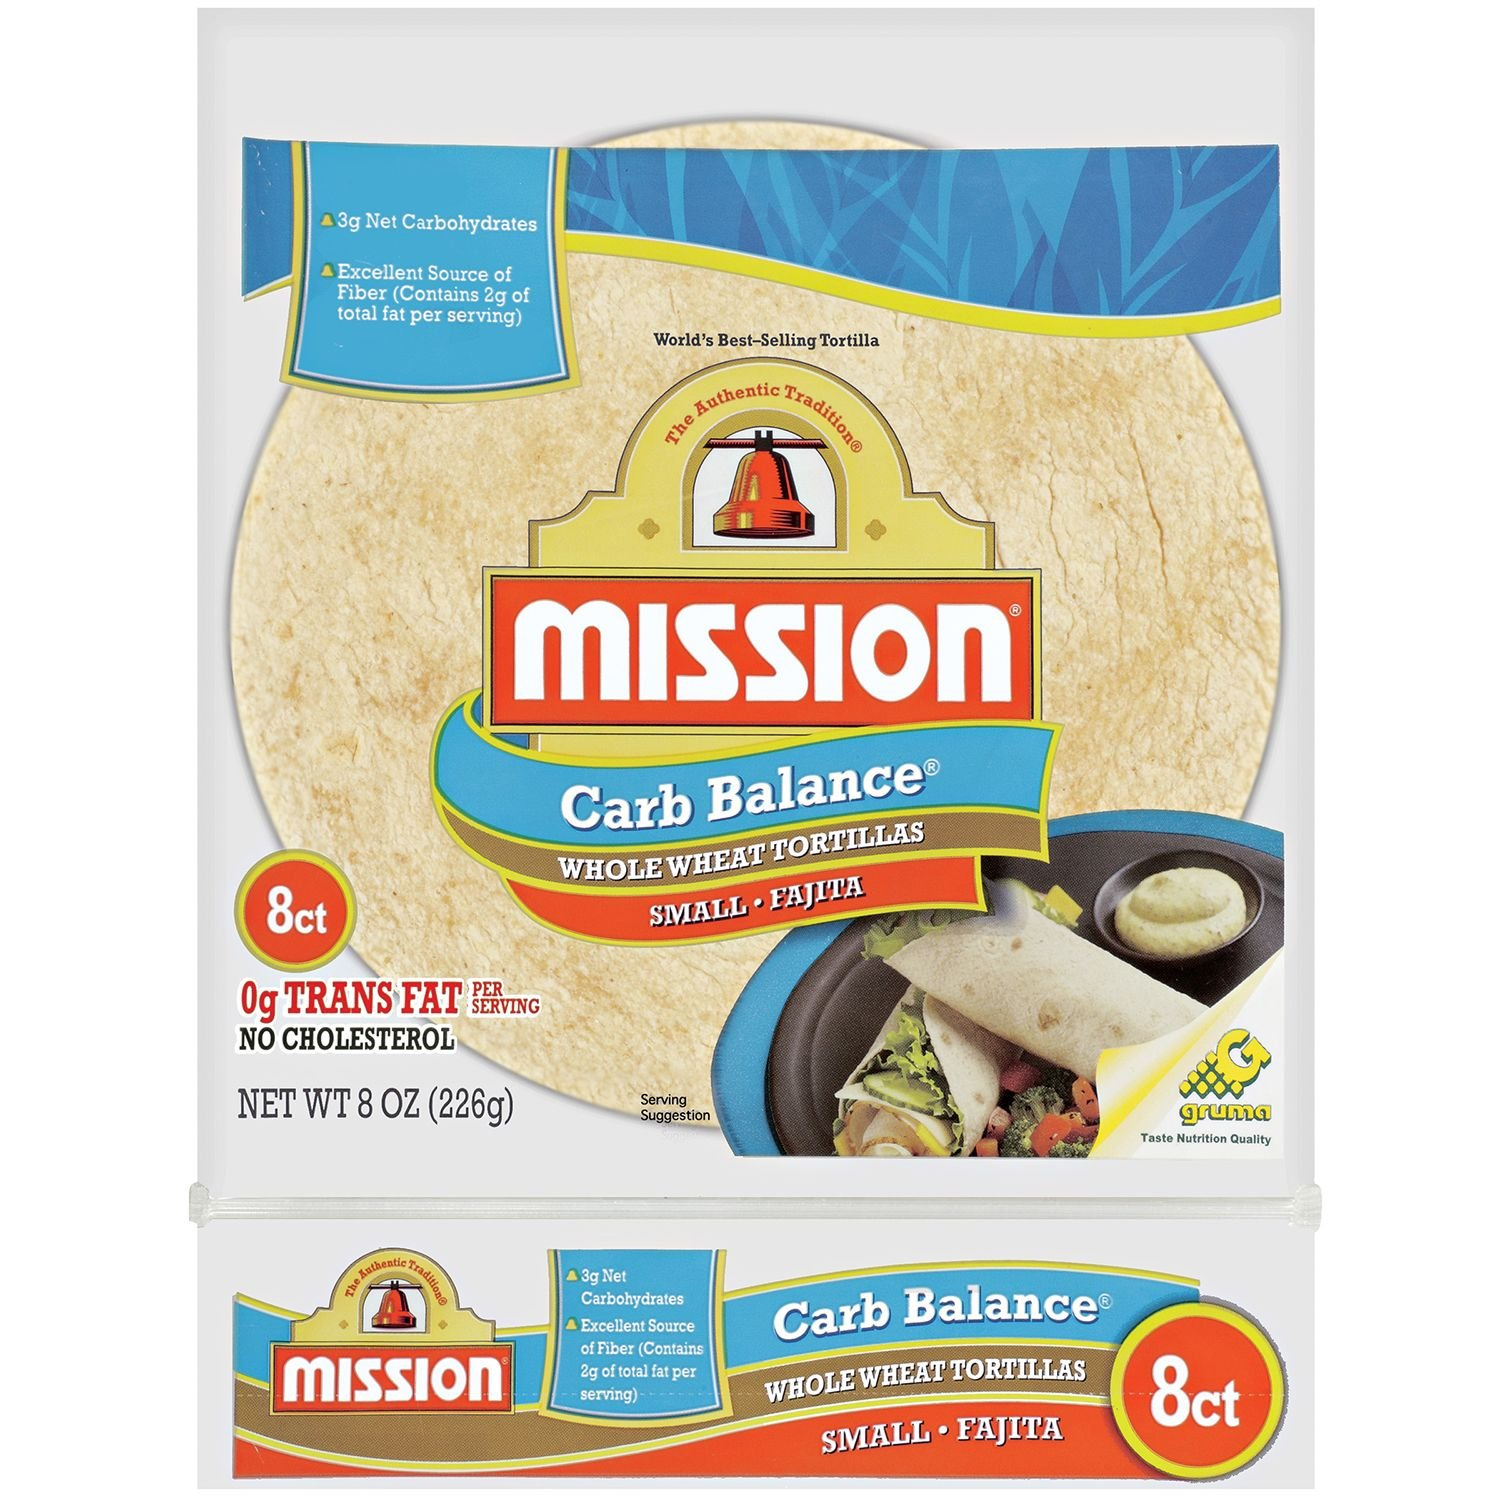 Mission, Carb Balance, Fajita Tortillas, 8 Count, 8oz Bag (Pack of 4) (Whole Wheat)